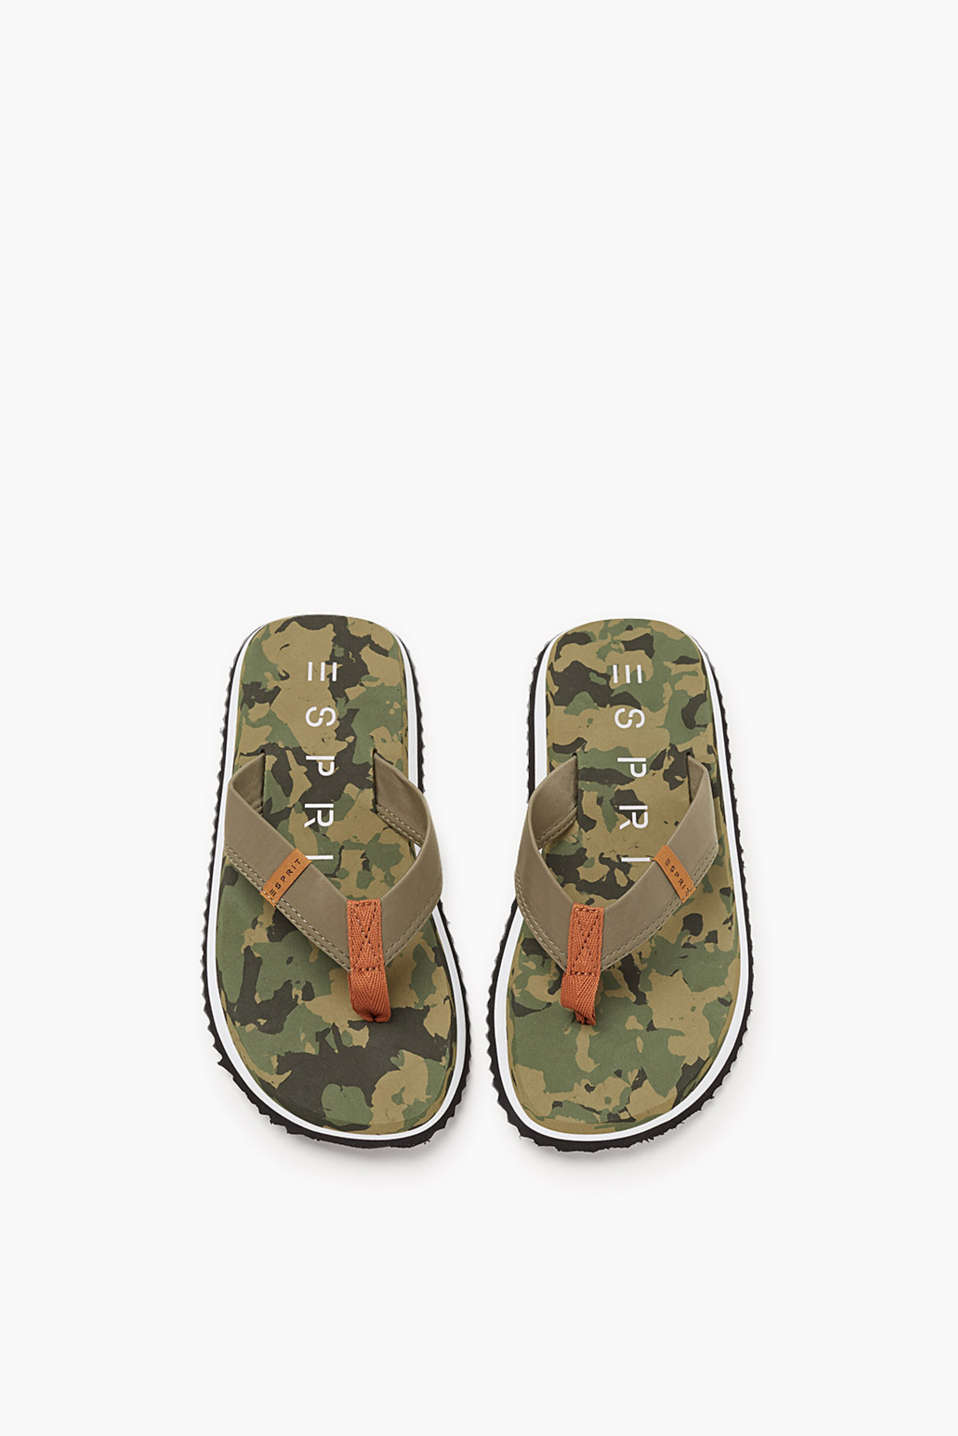 Ultra light, toe-post sandals with stylish, camouflage soles and comfy, textile straps in robust nylon